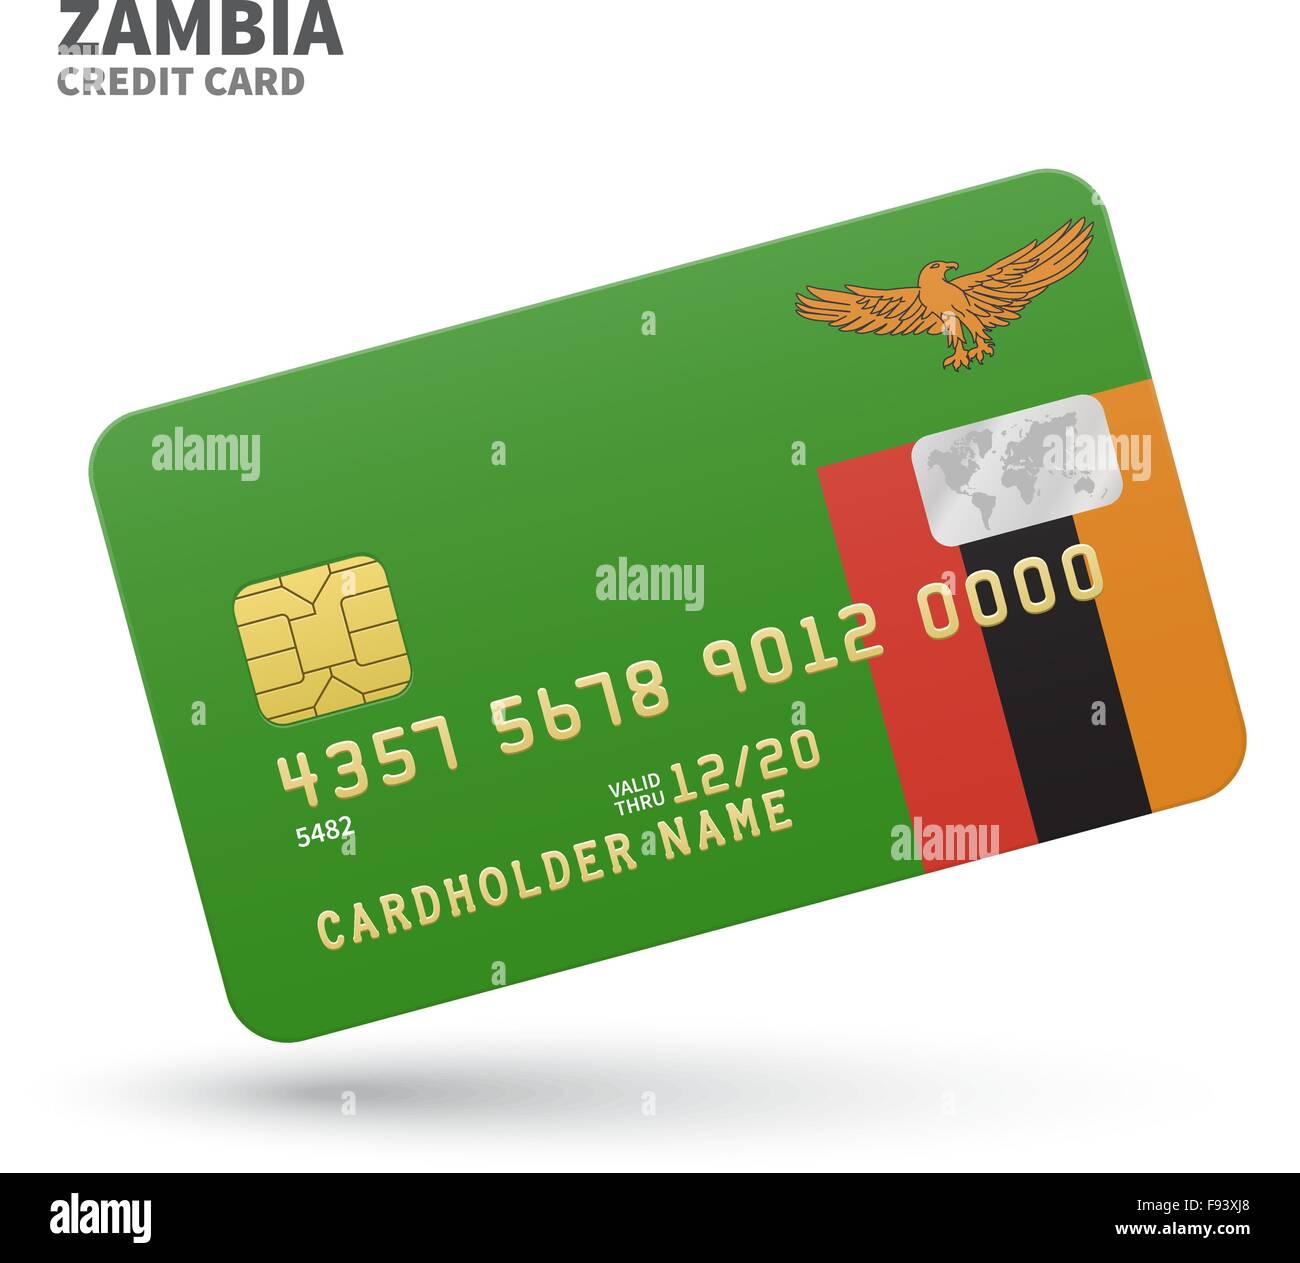 Credit card with zambia flag background for bank presentations and credit card with zambia flag background for bank presentations and business isolated on white reheart Choice Image